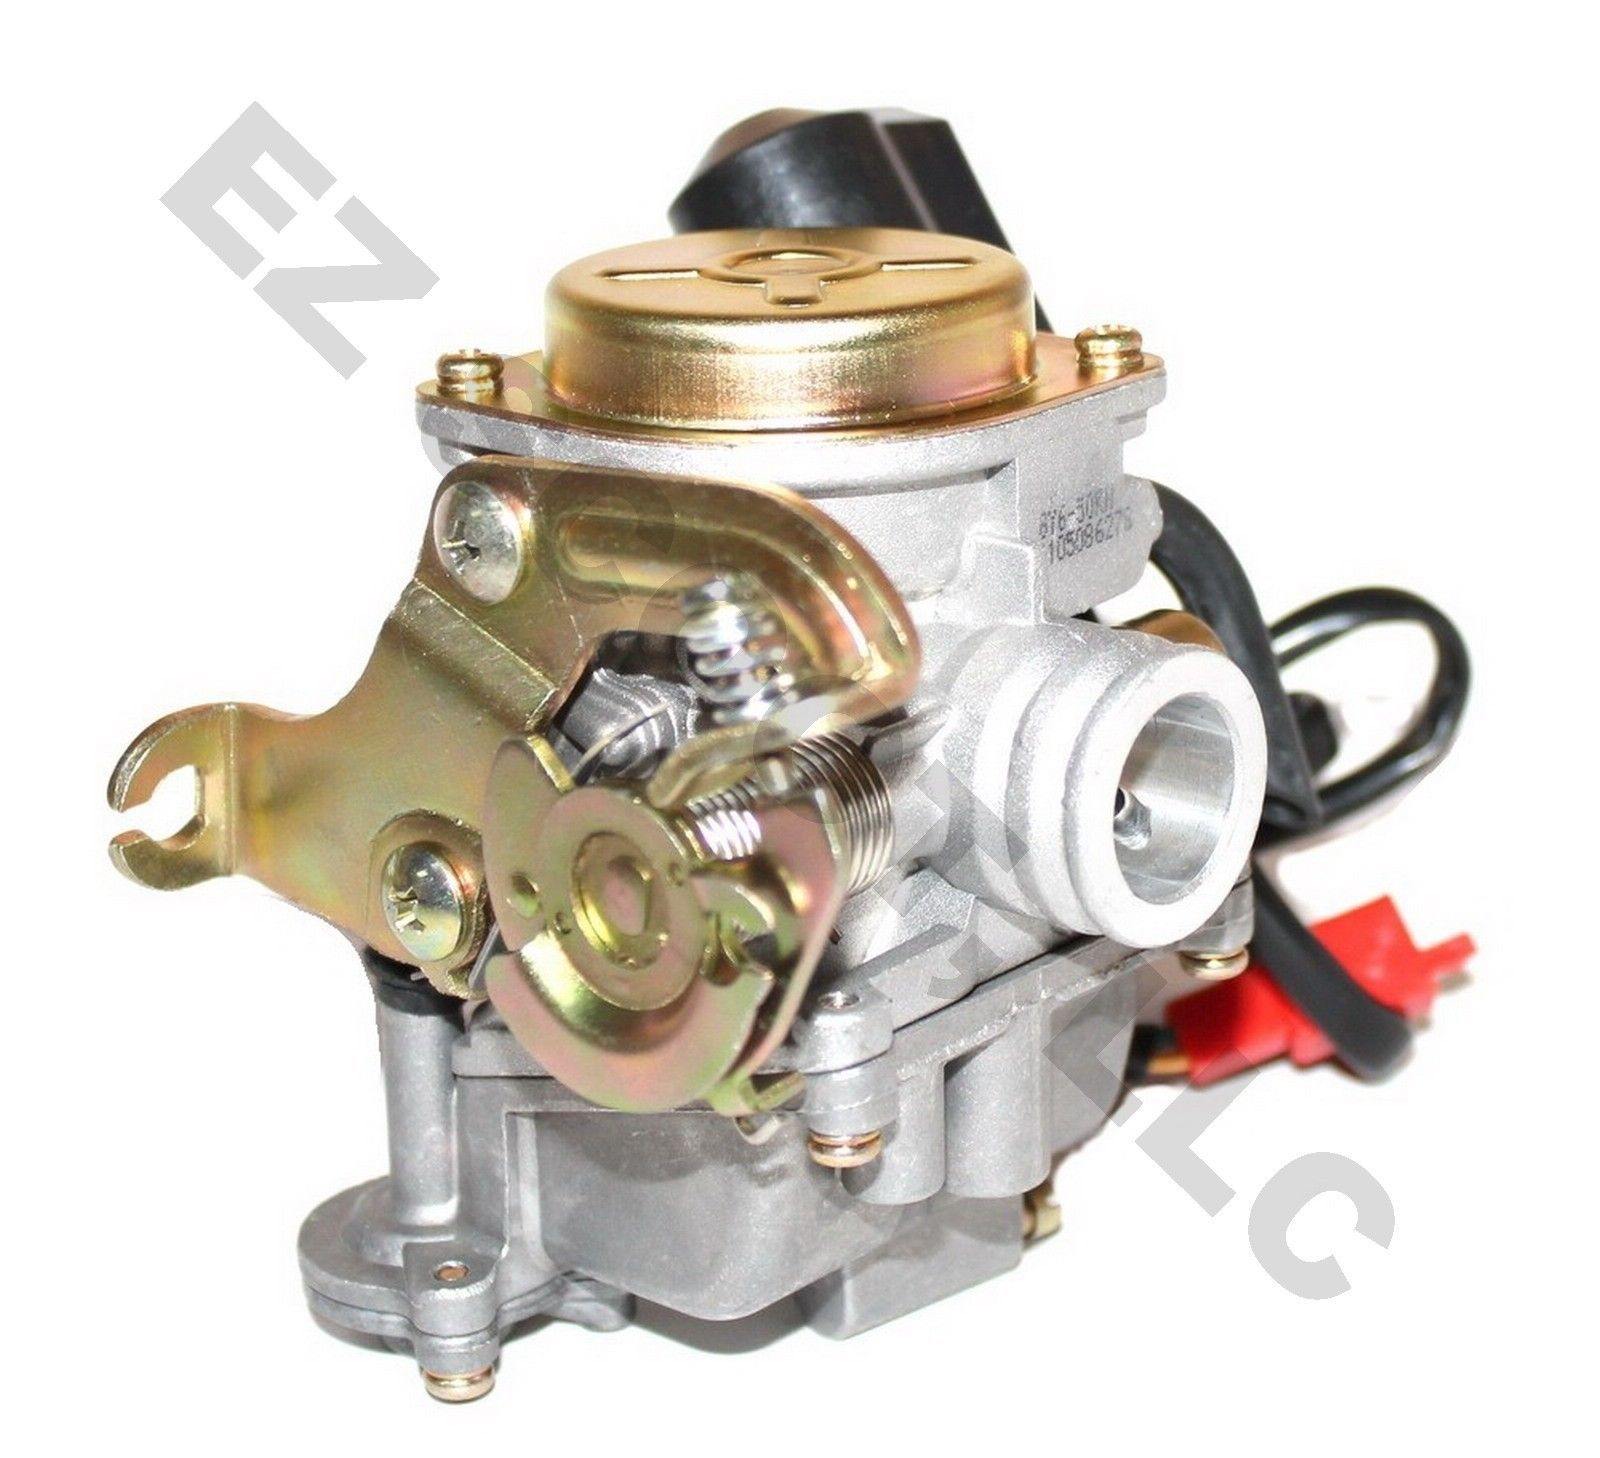 small resolution of carburetor sport for 139 qmb 50 80cc 19mm gy6 chinese 4stroke scooter atv taotao ebay